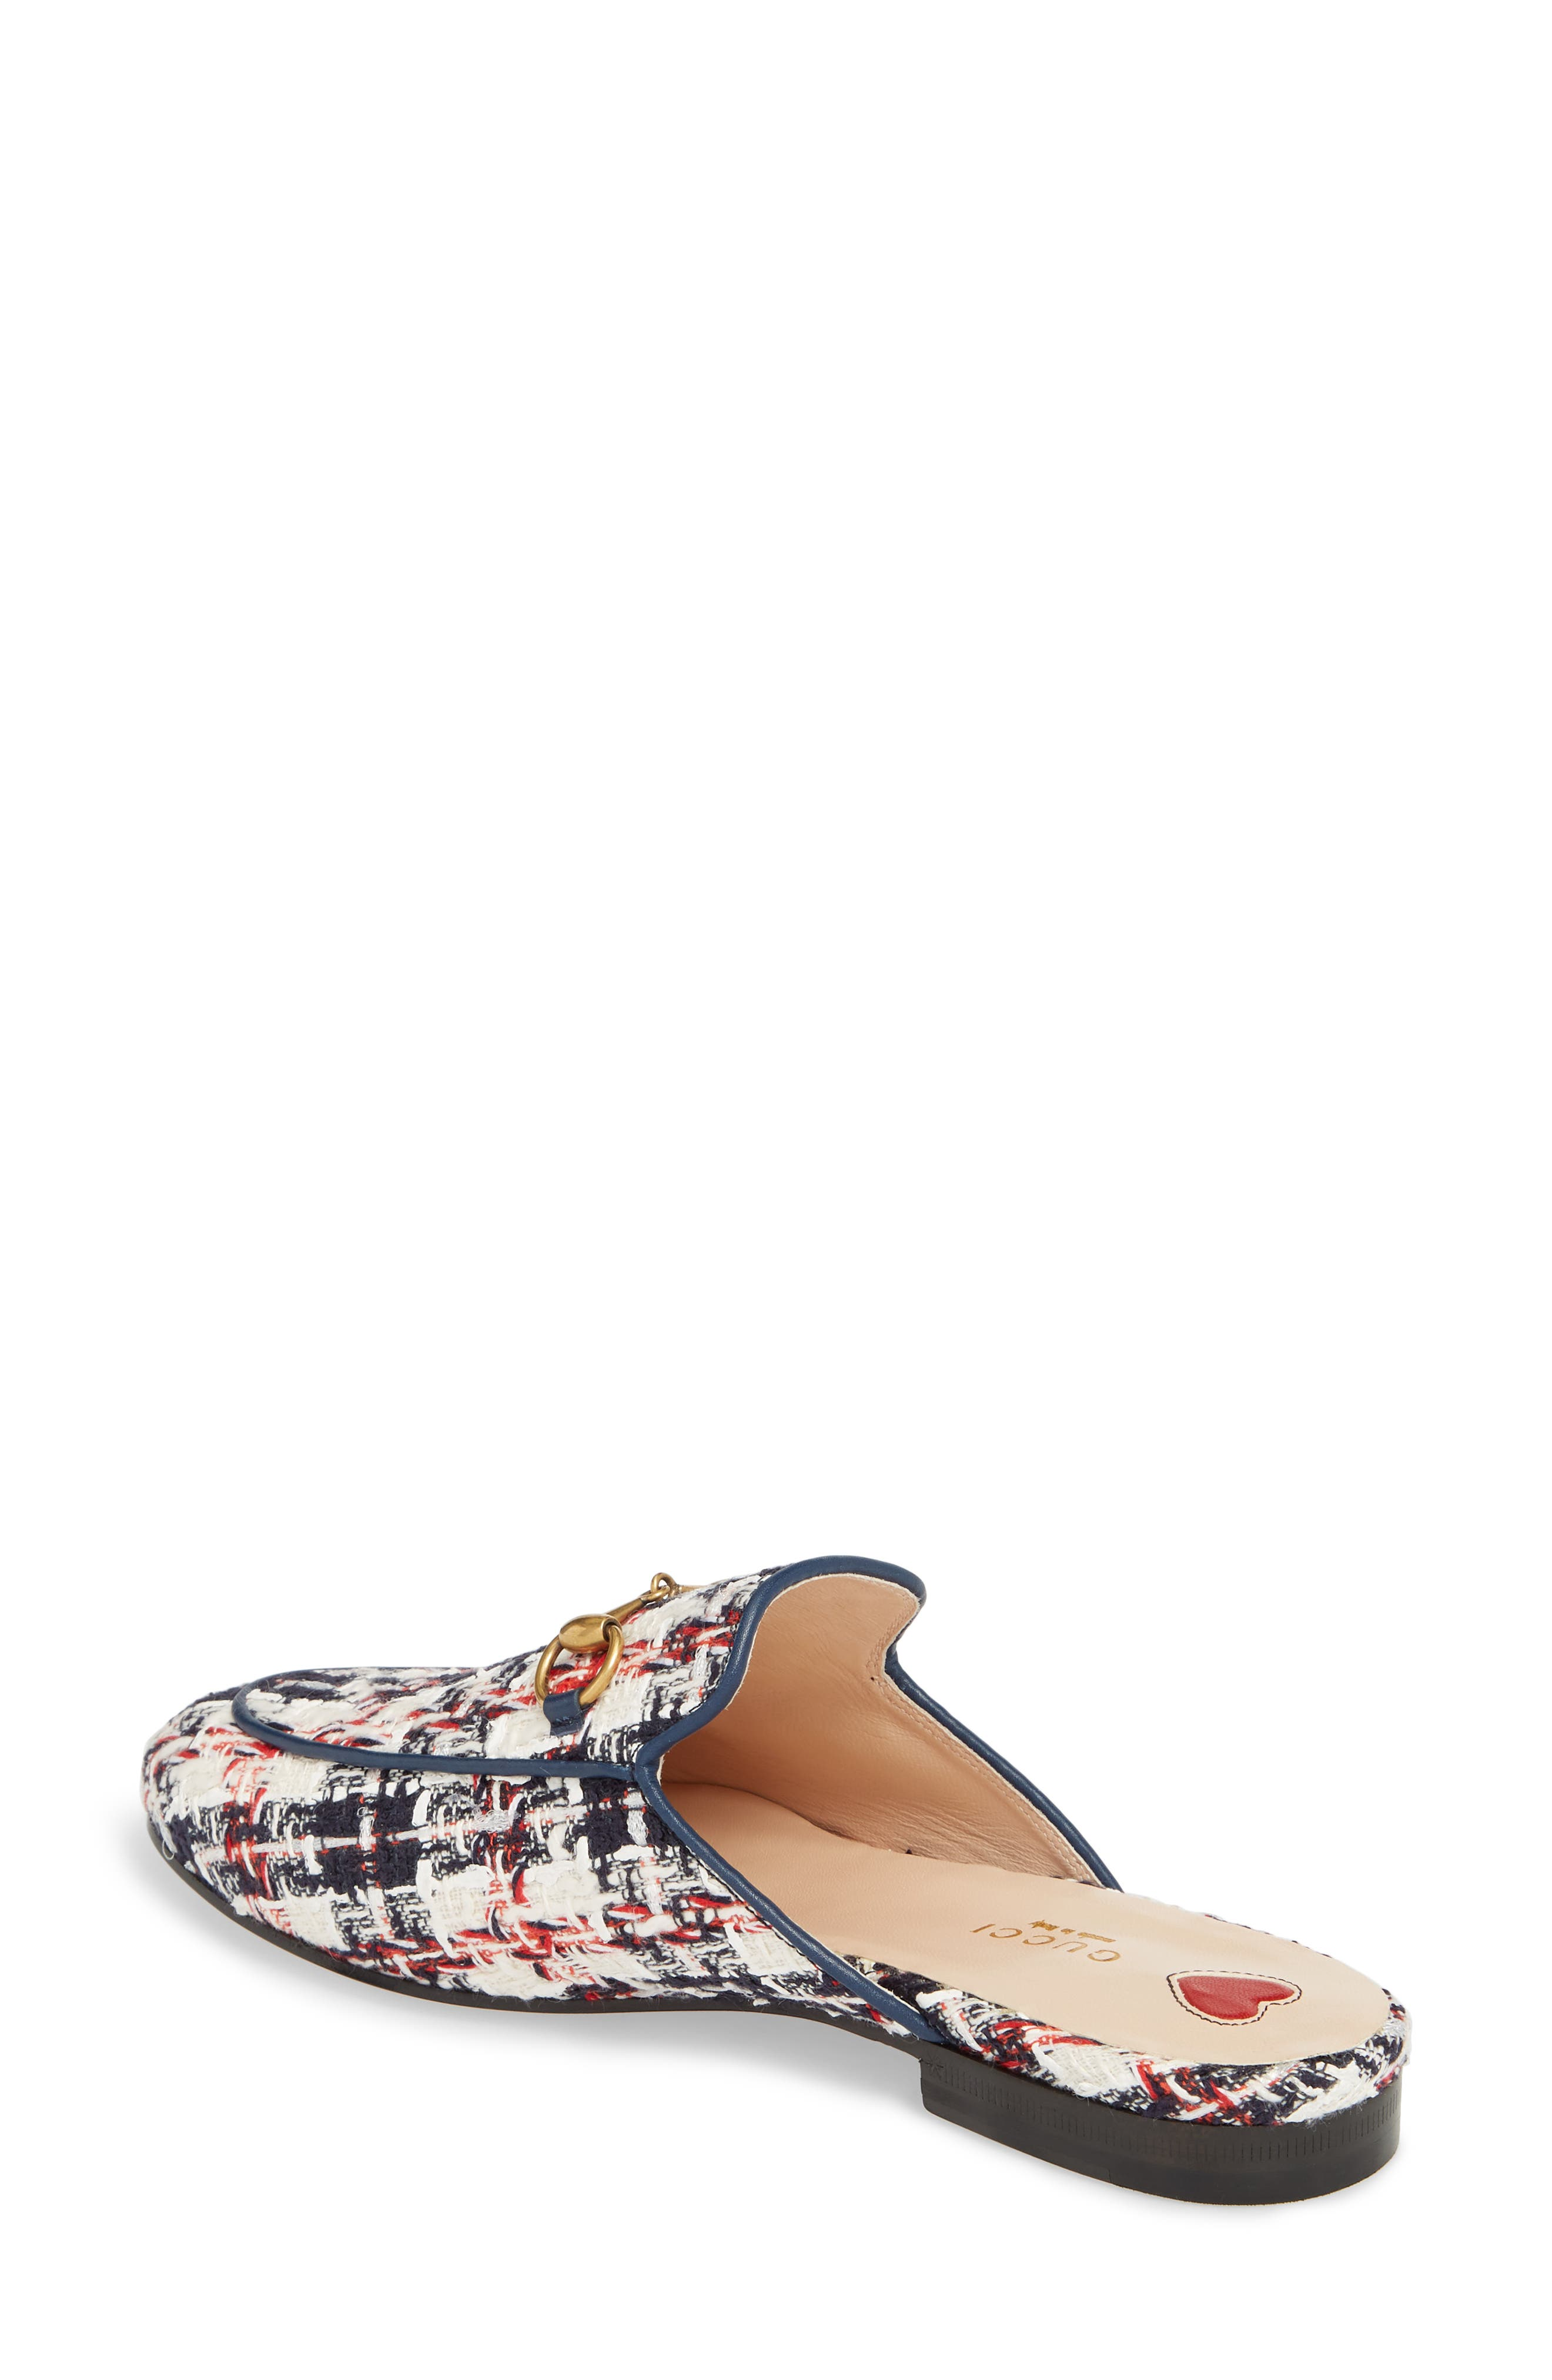 Princetown Loafer Mule,                             Alternate thumbnail 2, color,                             BLUE/ WHITE/ RED